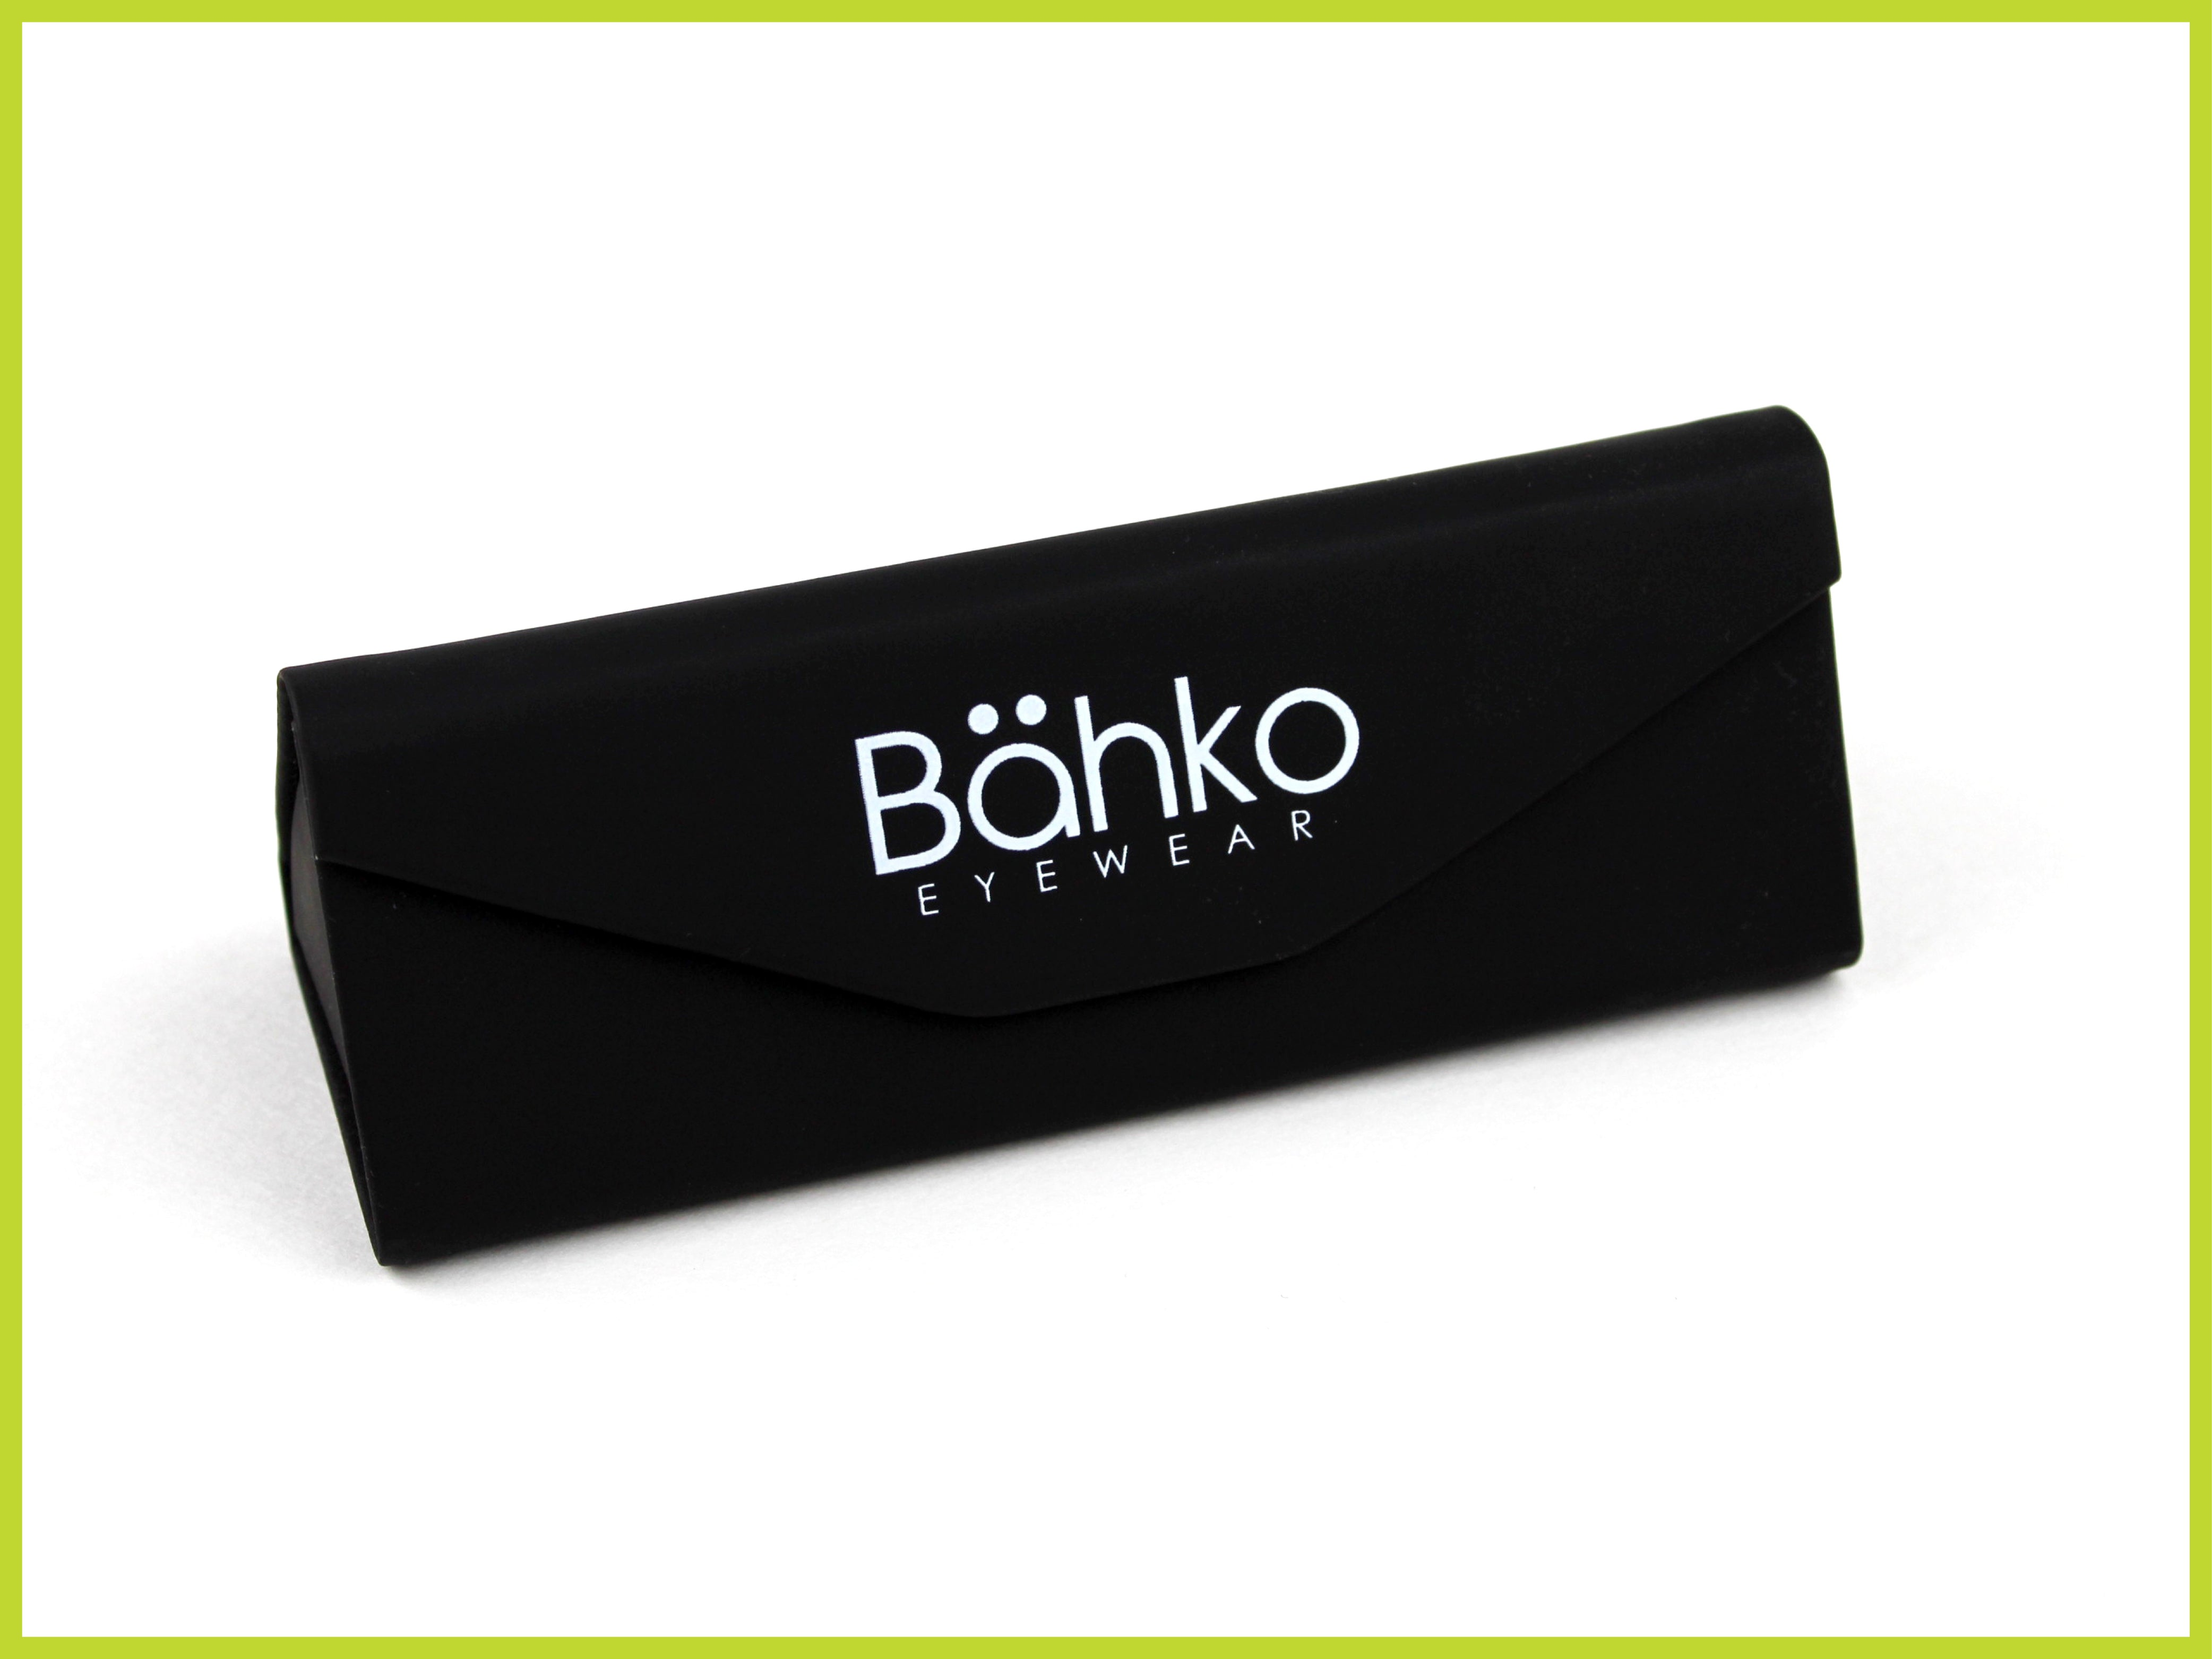 Bähko Eyewear Foldable Hard Case